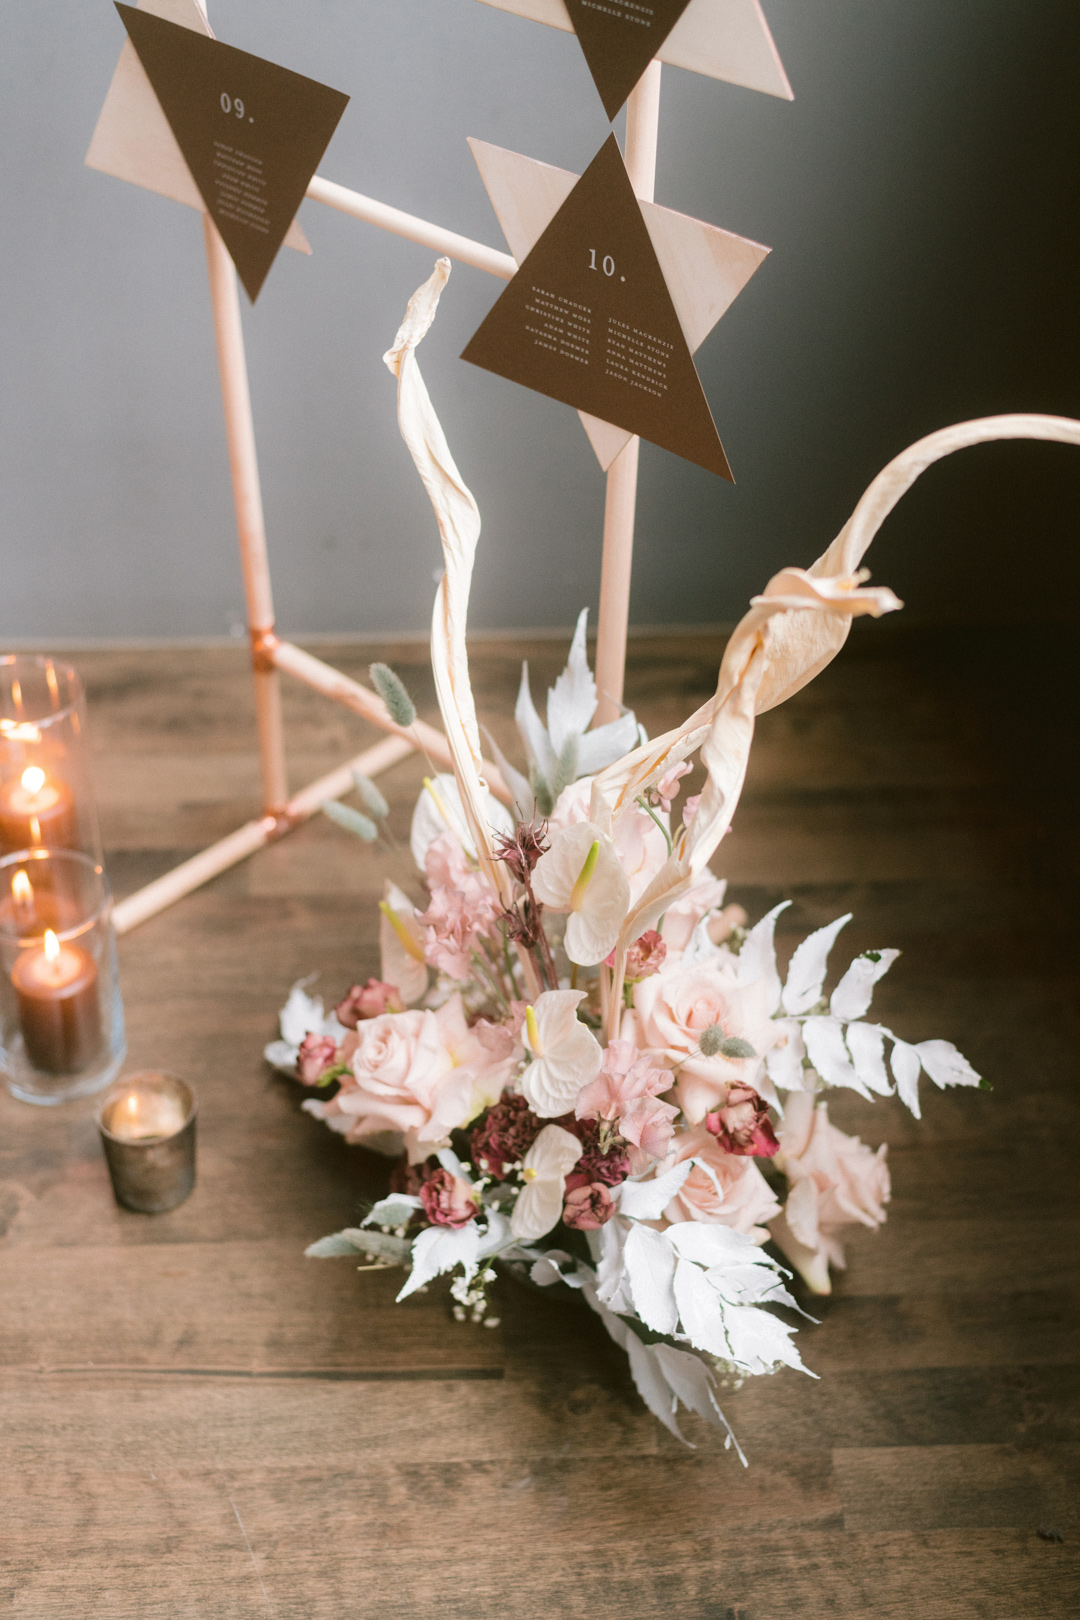 Wedding decor with a pastel bouquet and candles on the floor next to the wedding registry